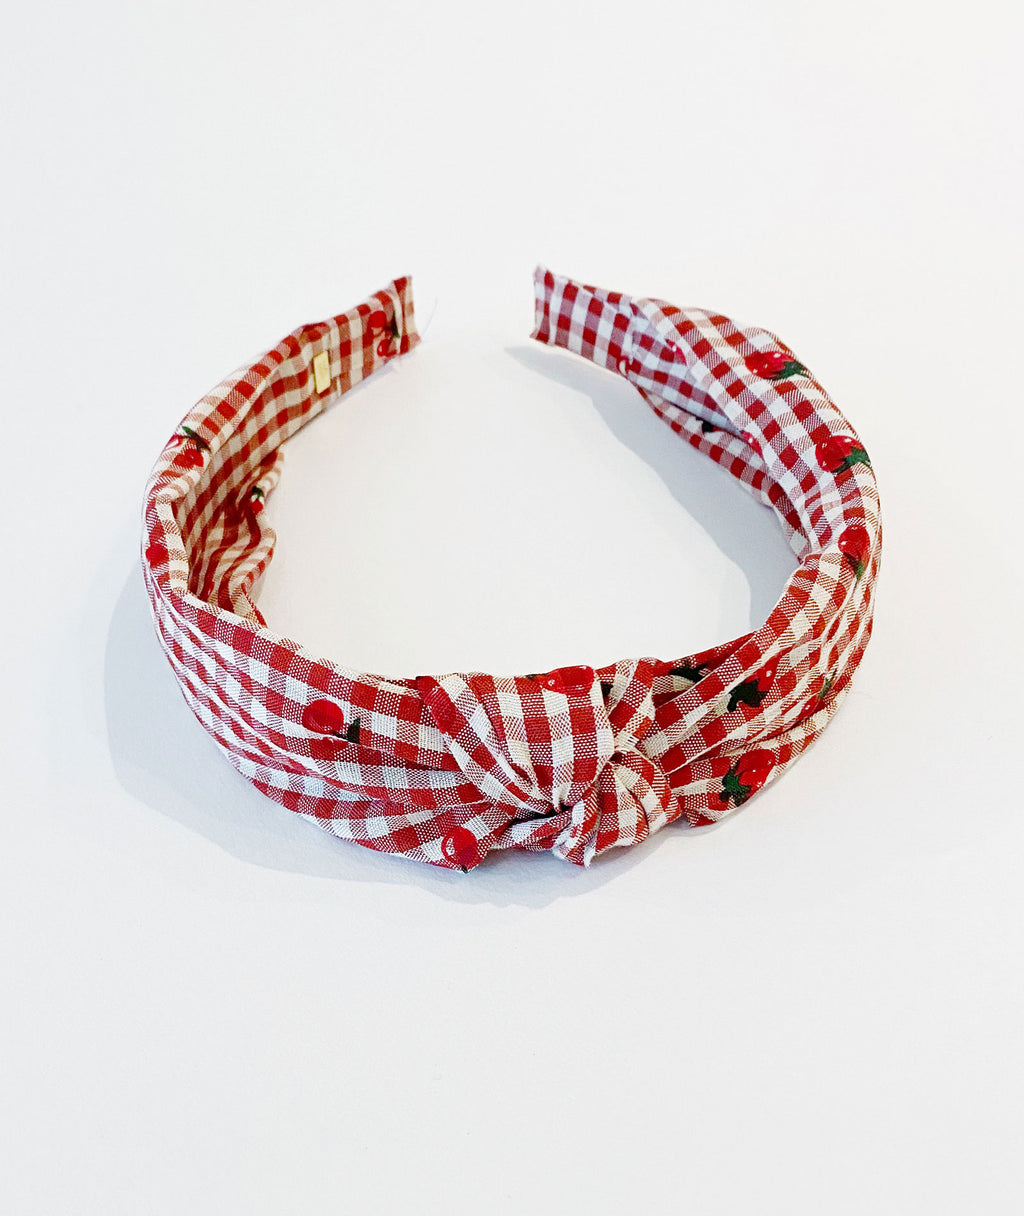 Bari Lynn Strawberry & Cherry Knot Gingham Headband